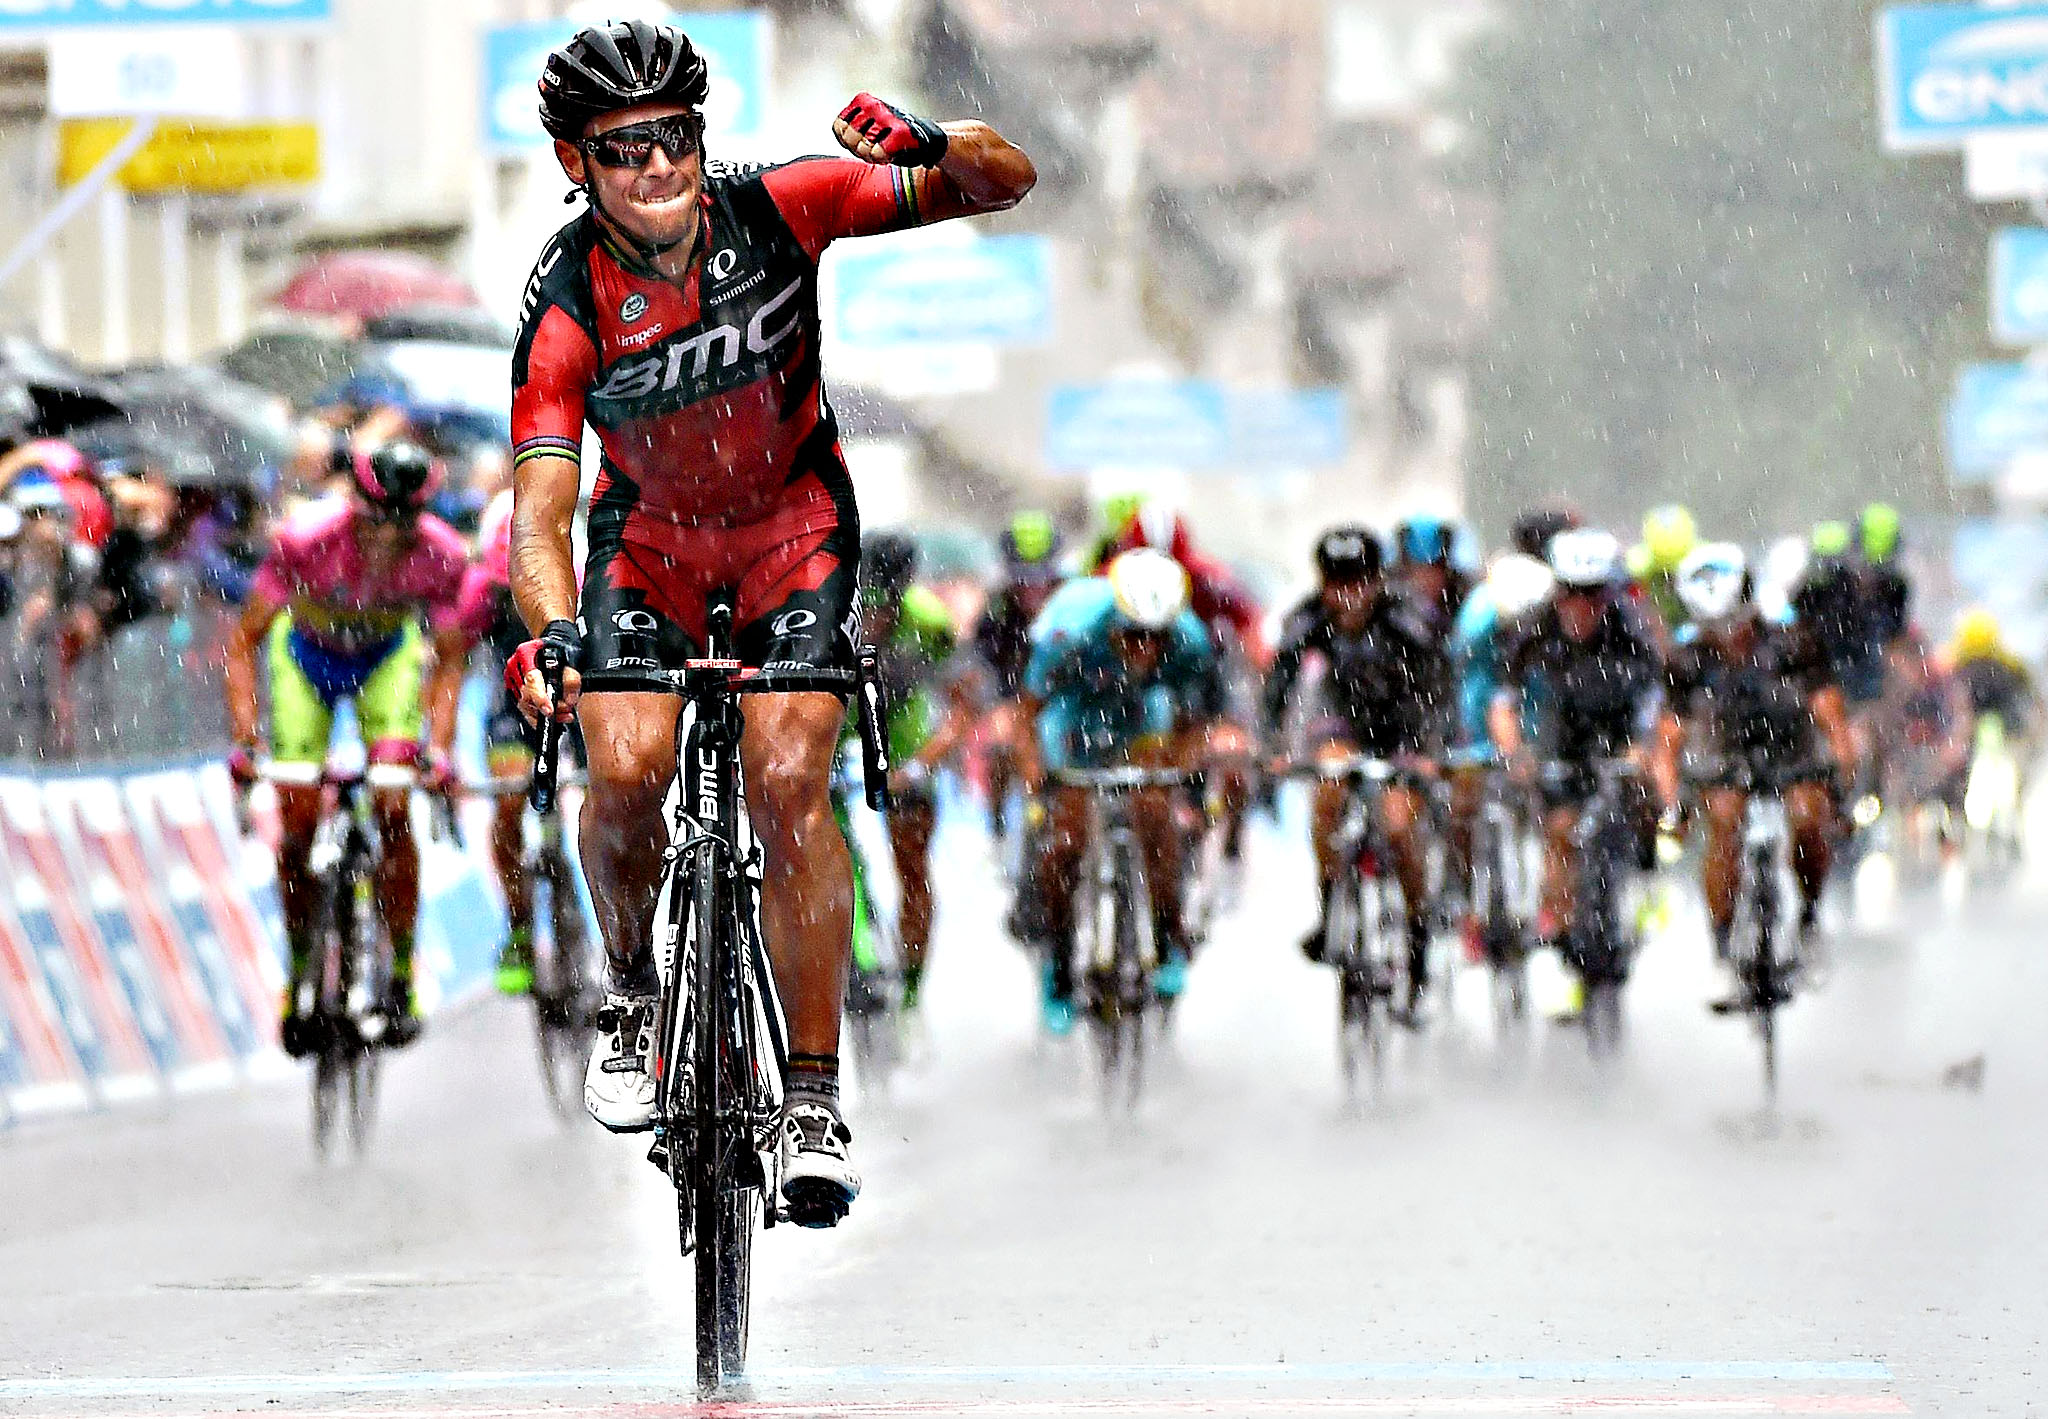 Belgium's Philippe Gilbert celebrates as he crosses the finish line to win the 12th stage of the Giro d'Italia, Tour of Italy cycling race from Imola to Vicenza, Italy, Thursday, May 21, 2015. Alberto Contador extended his overall lead ahead of Fabio Aru to 17 seconds while Philippe Gilbert won the rainy 12th stage of the Giro d'Italia on Thursday